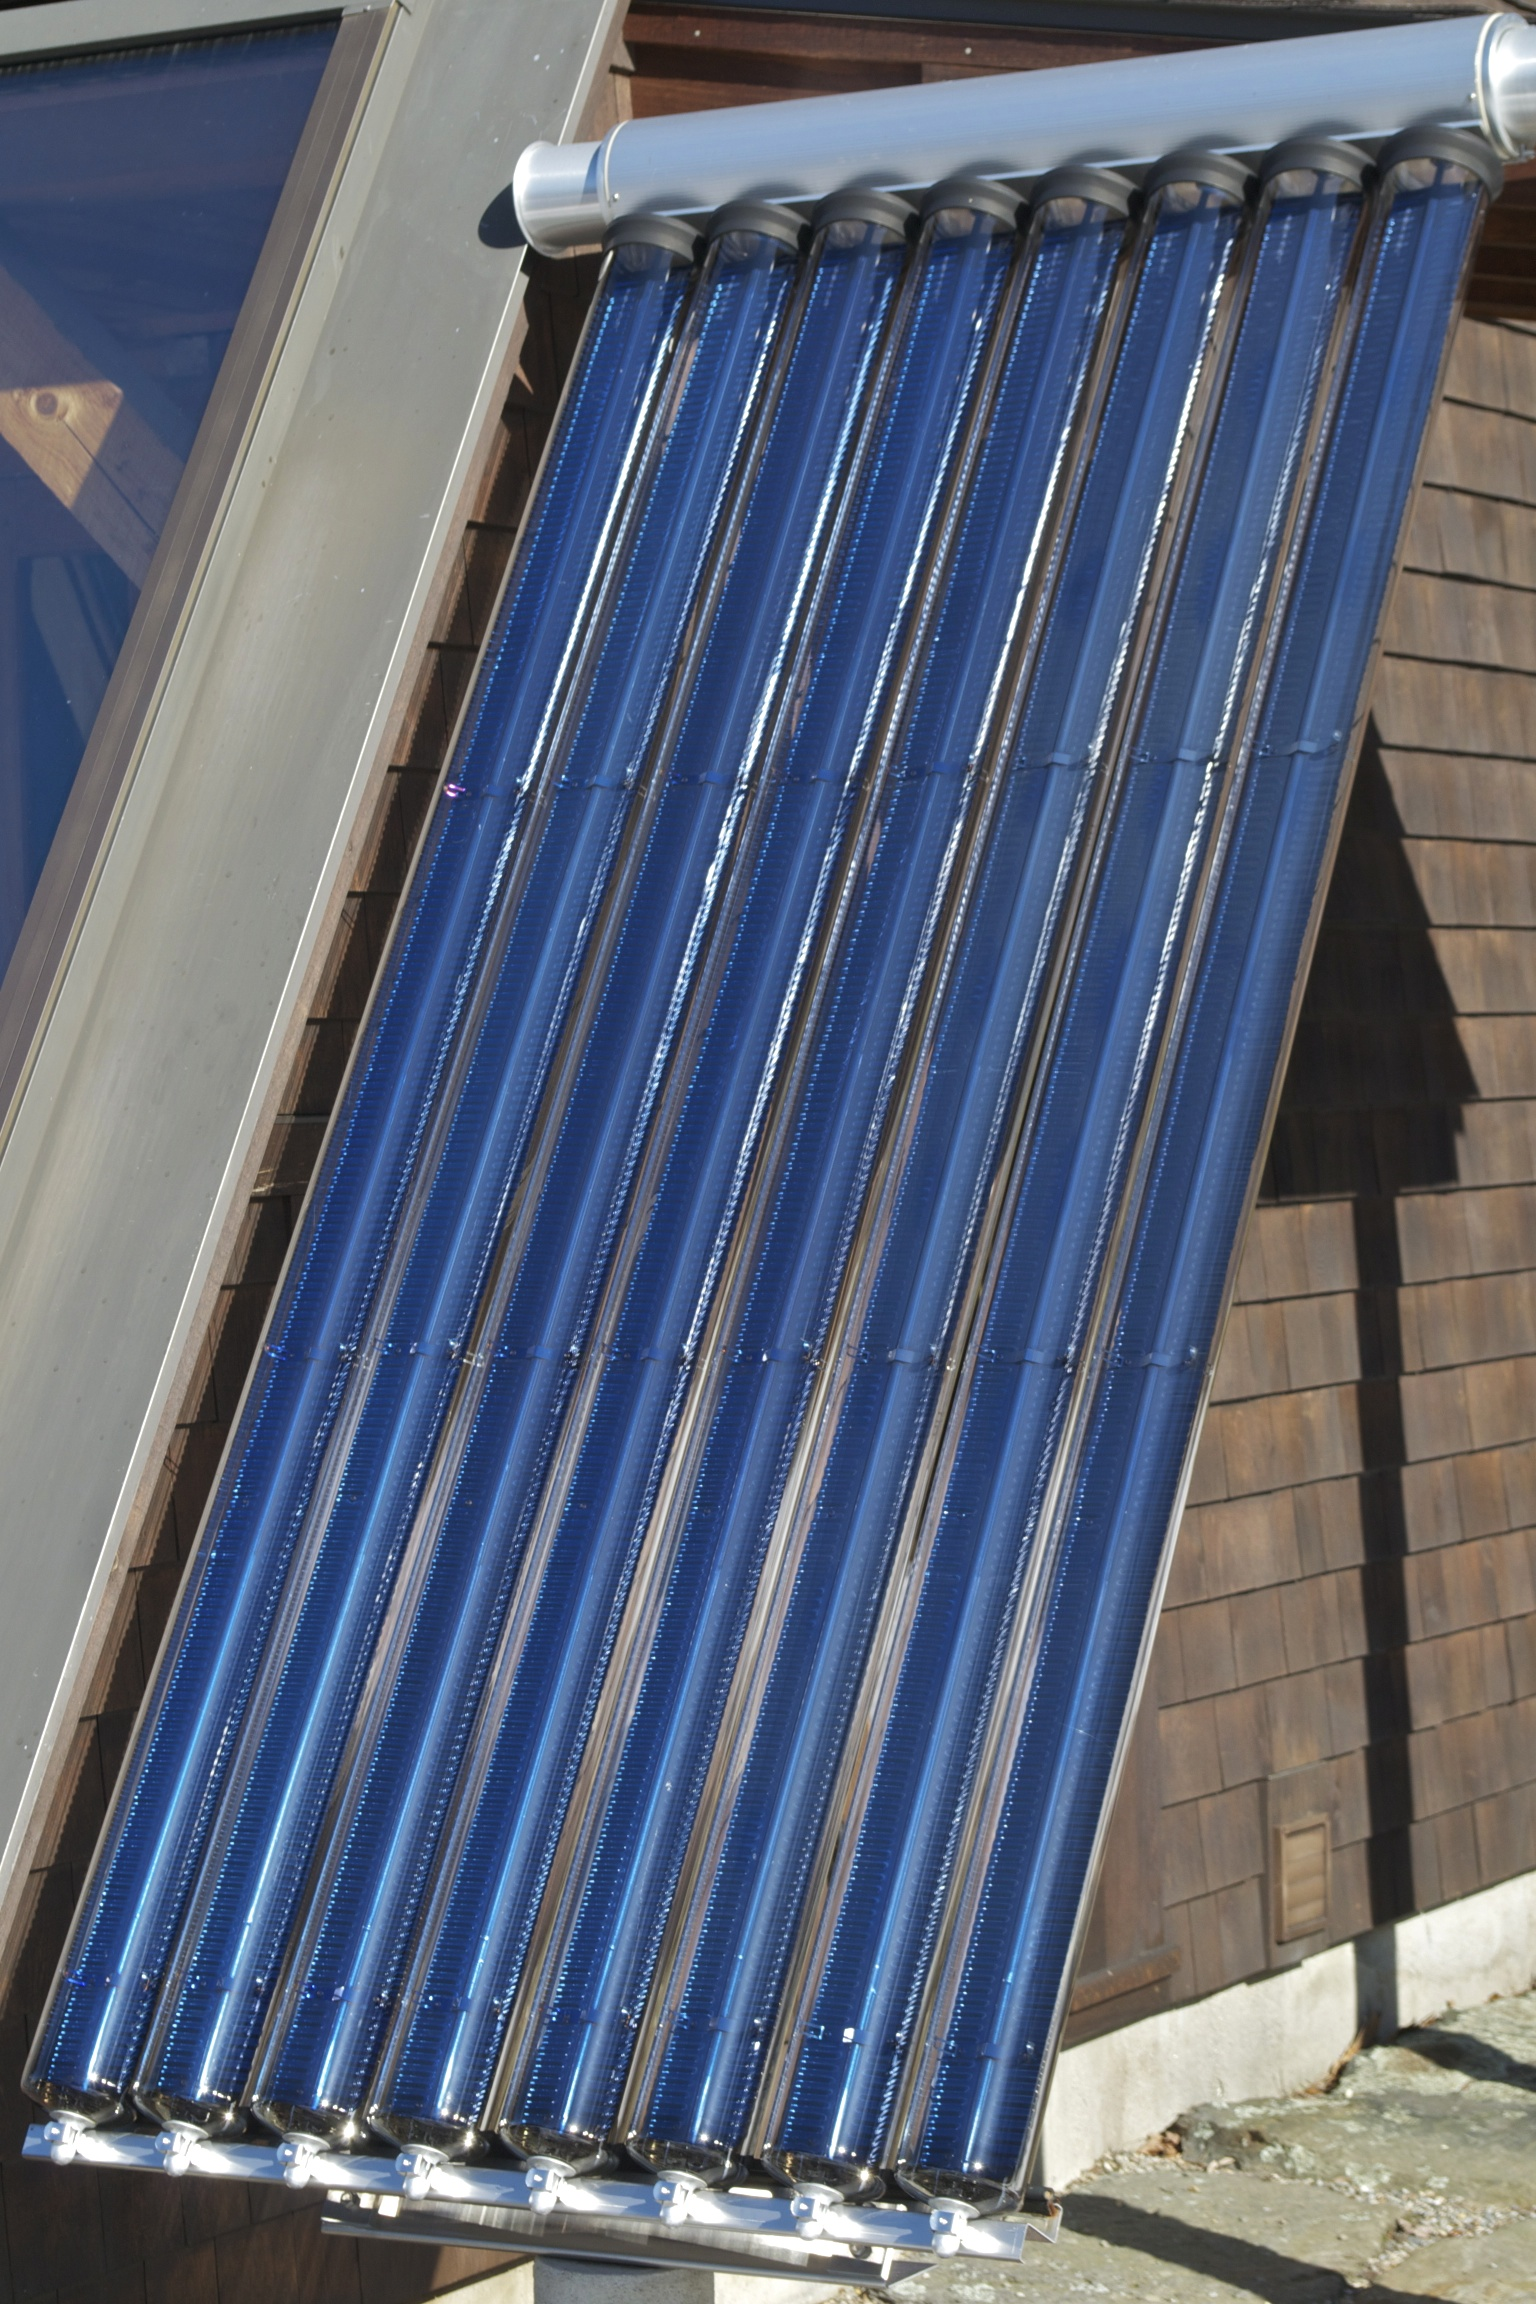 Evacuated Tube Solar Hot Water Heater Energysage